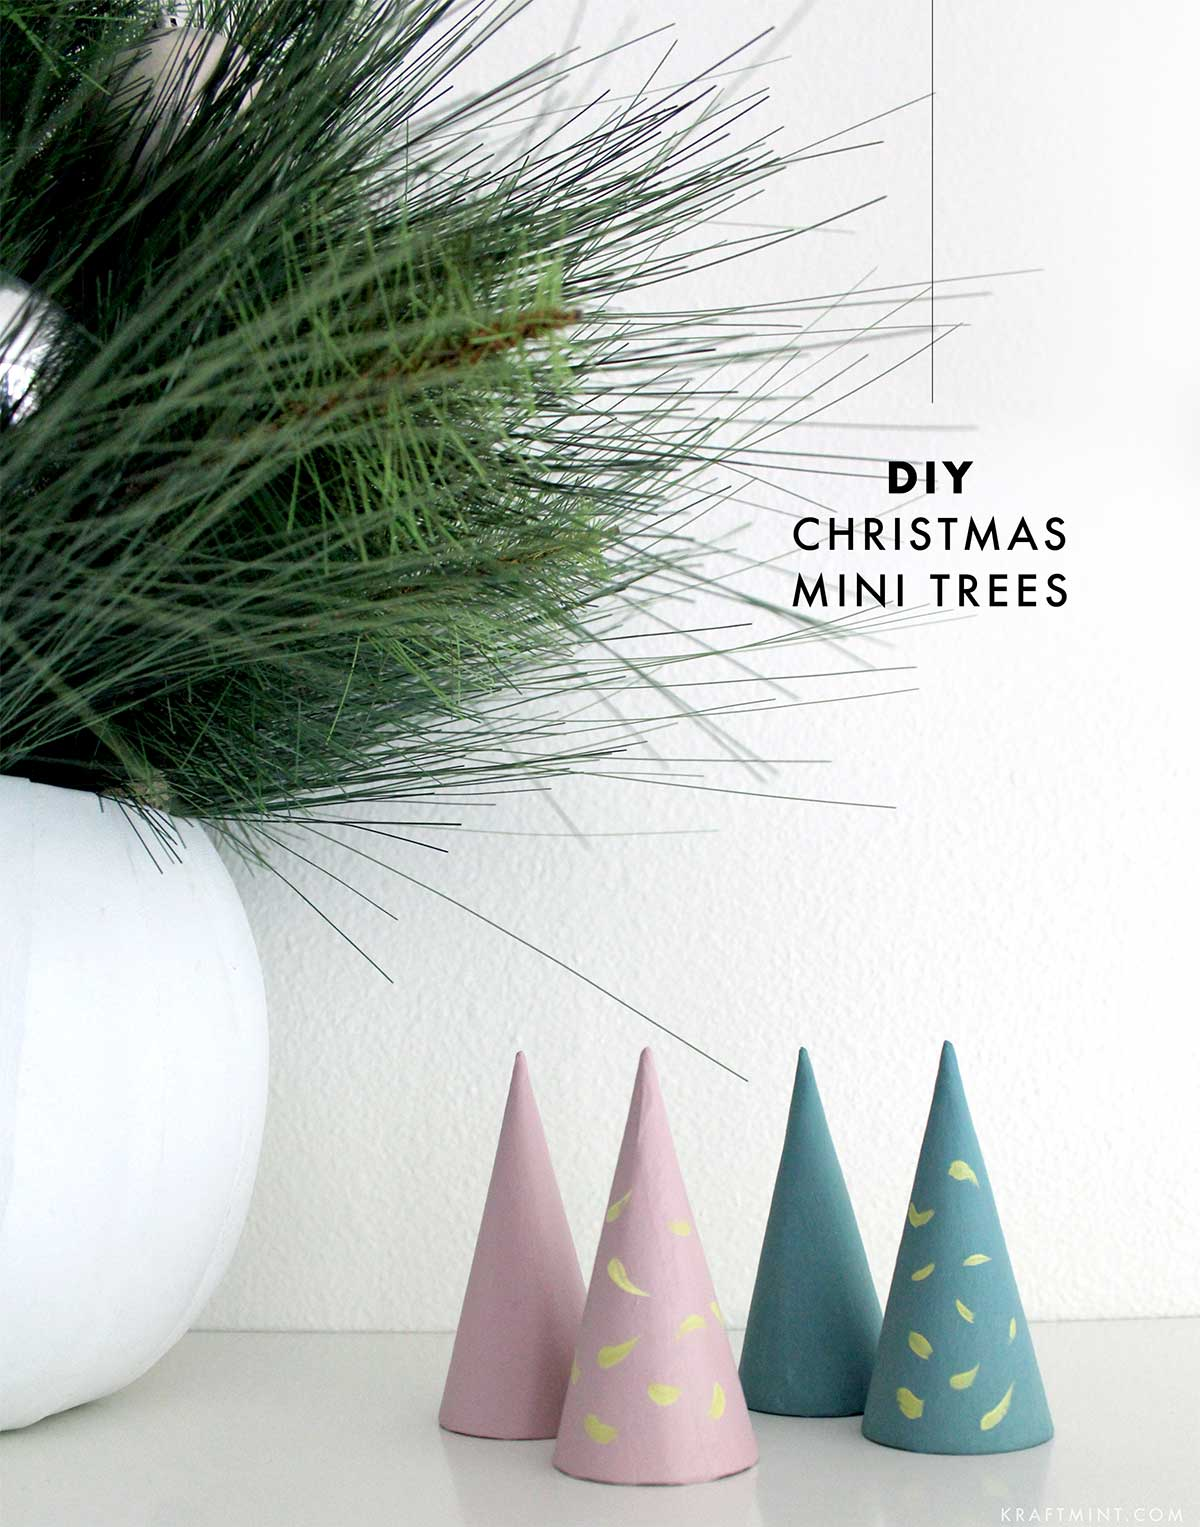 DIY Christmas mini trees decor